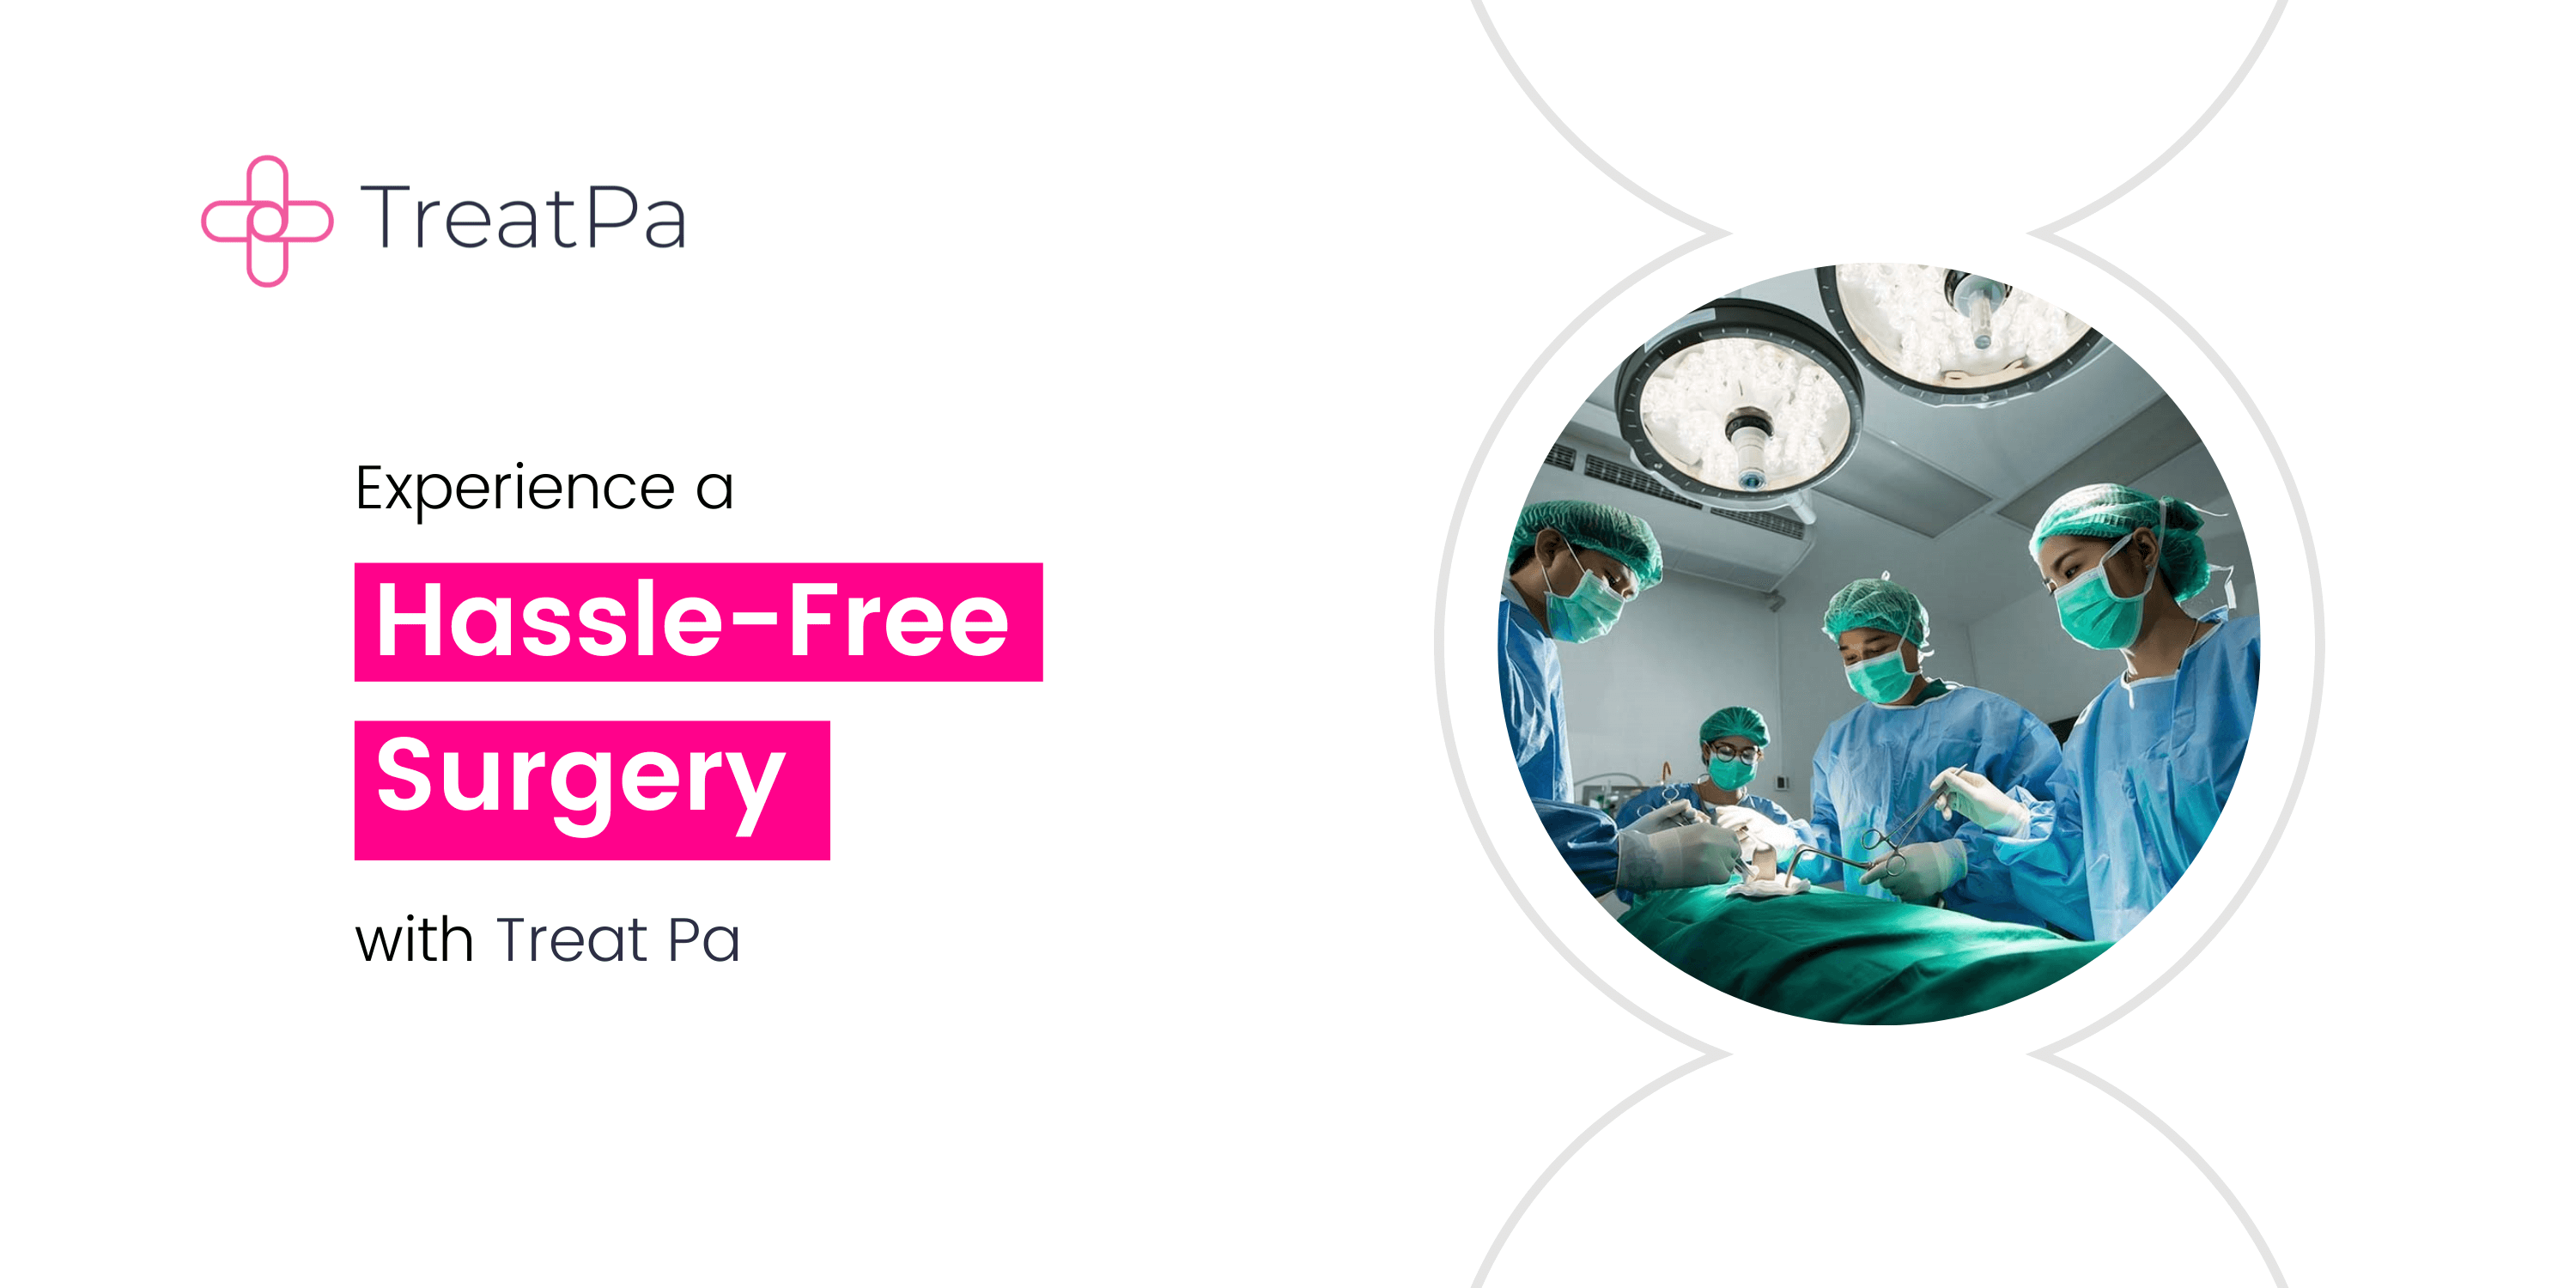 Hassle free surgery with Treat Pa